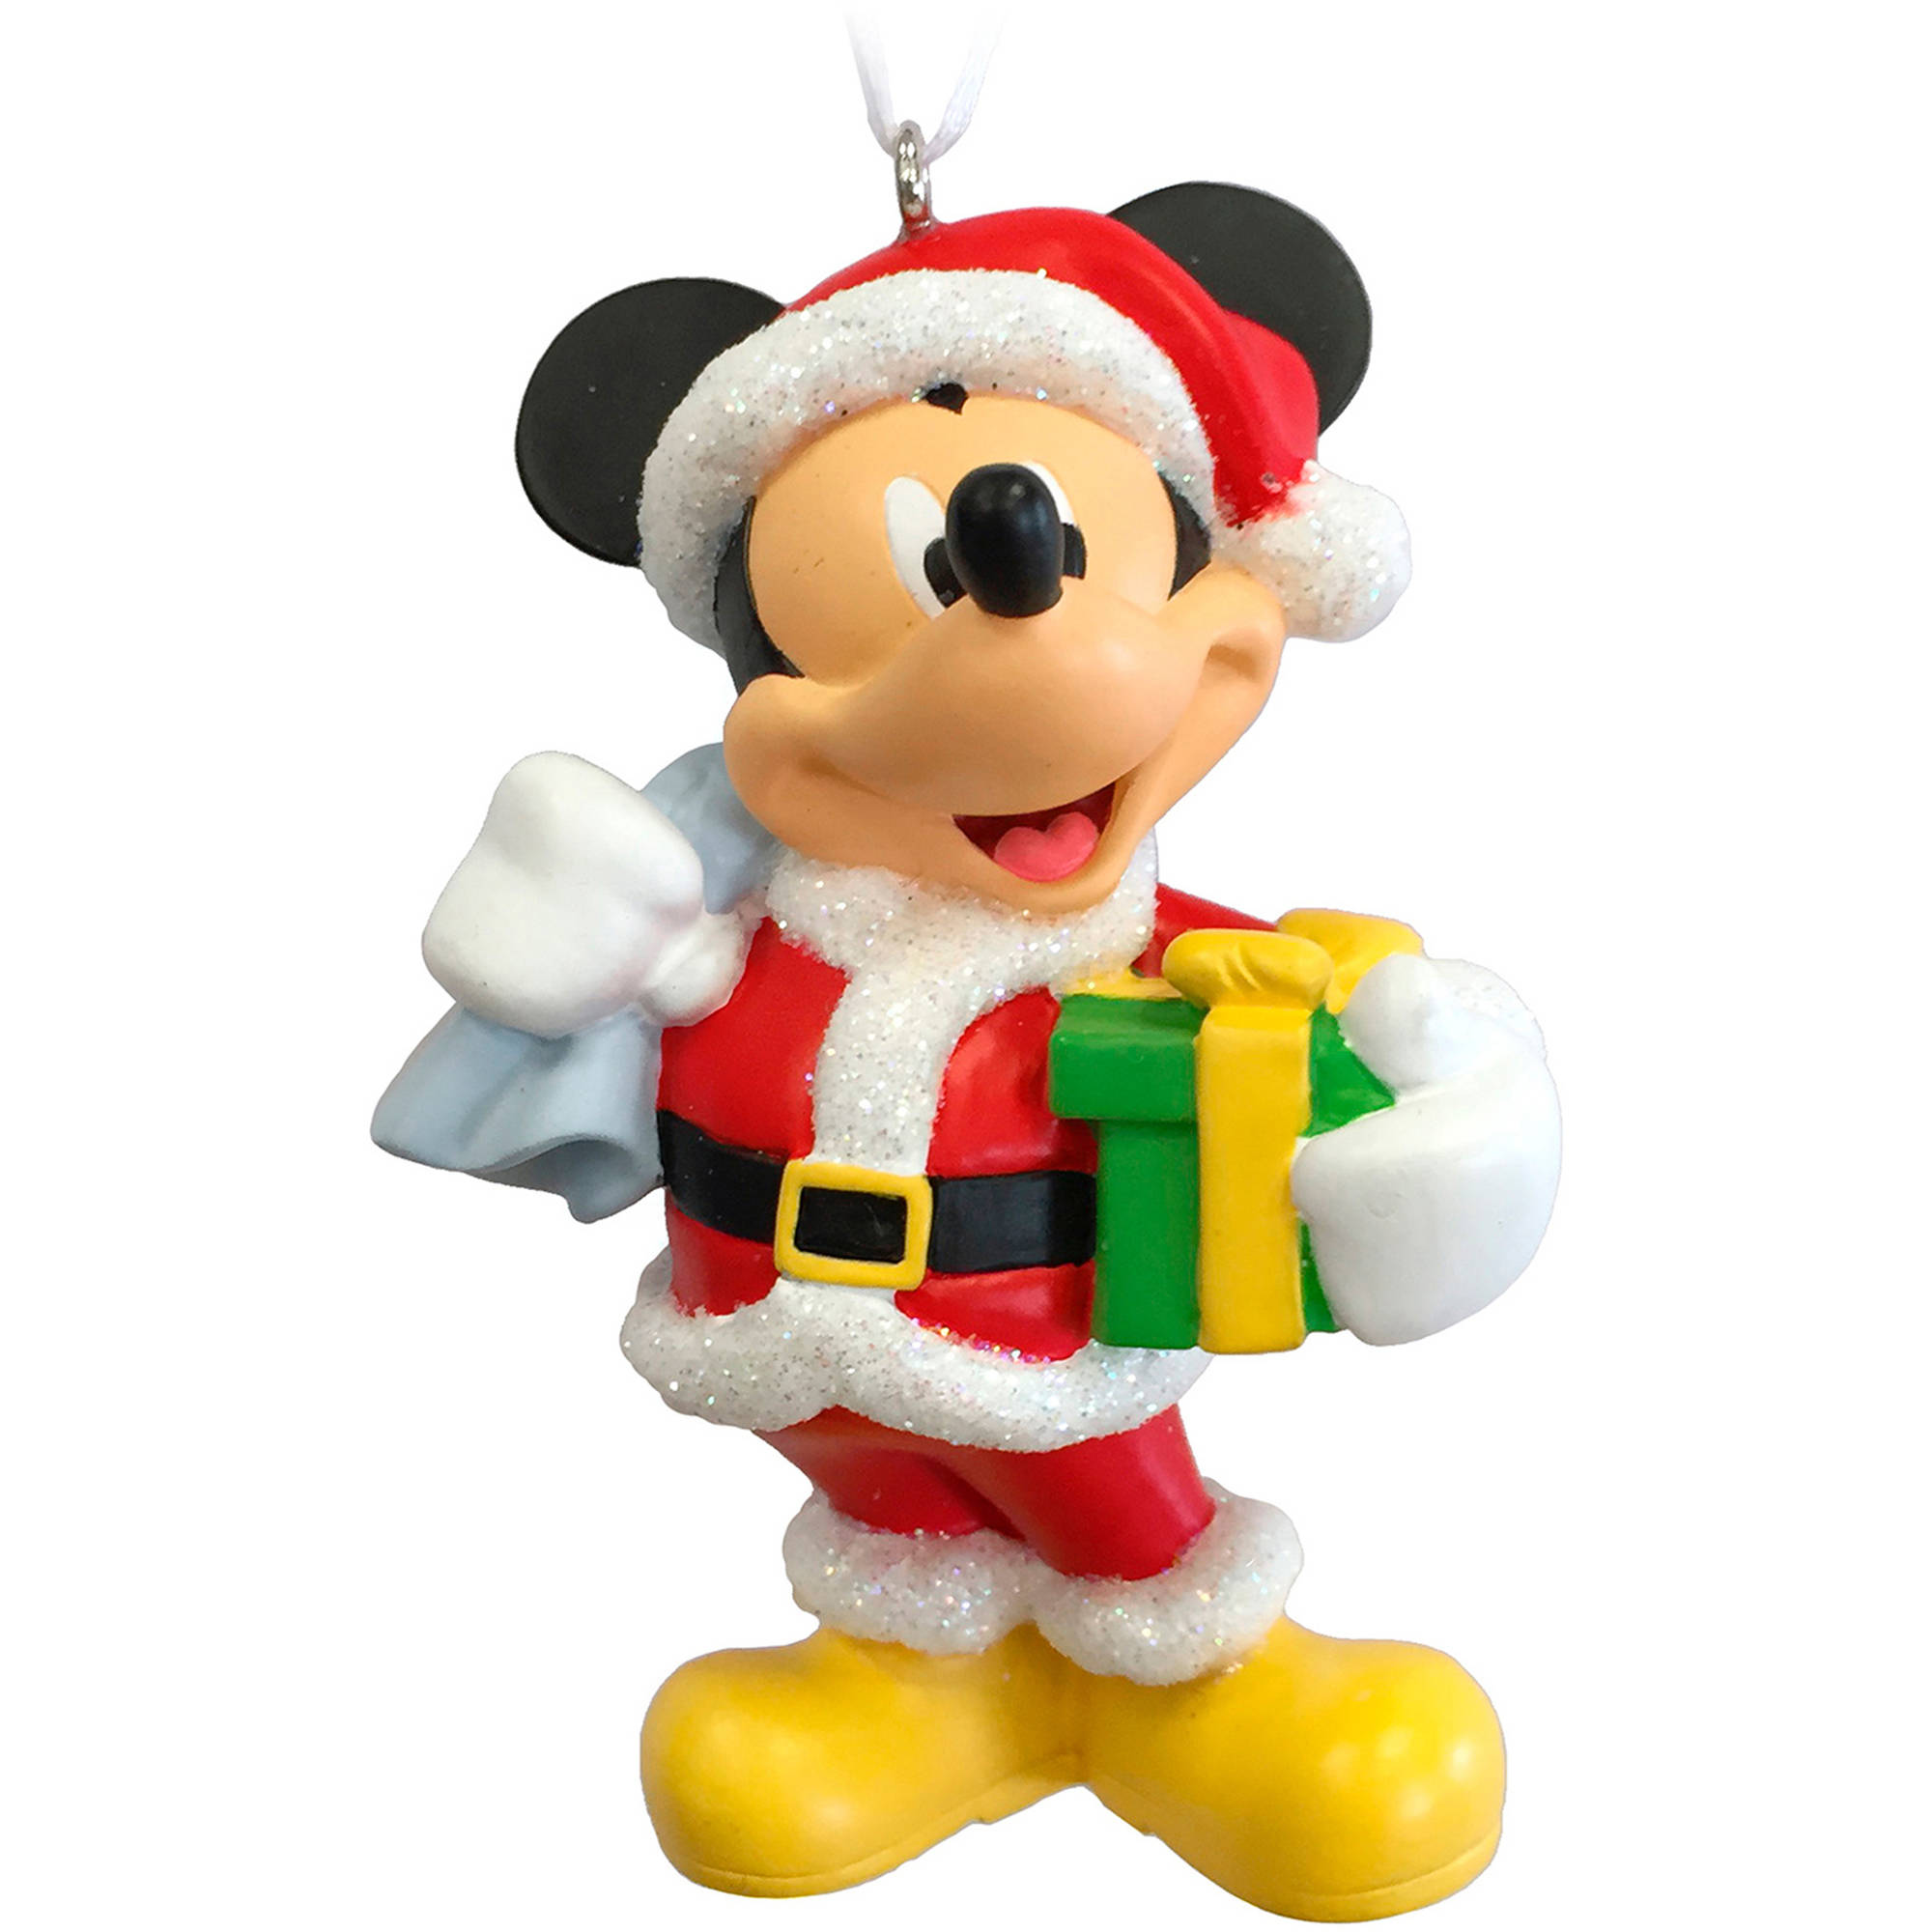 Hallmark Disney Mickey Mouse as Santa Claus Ornament